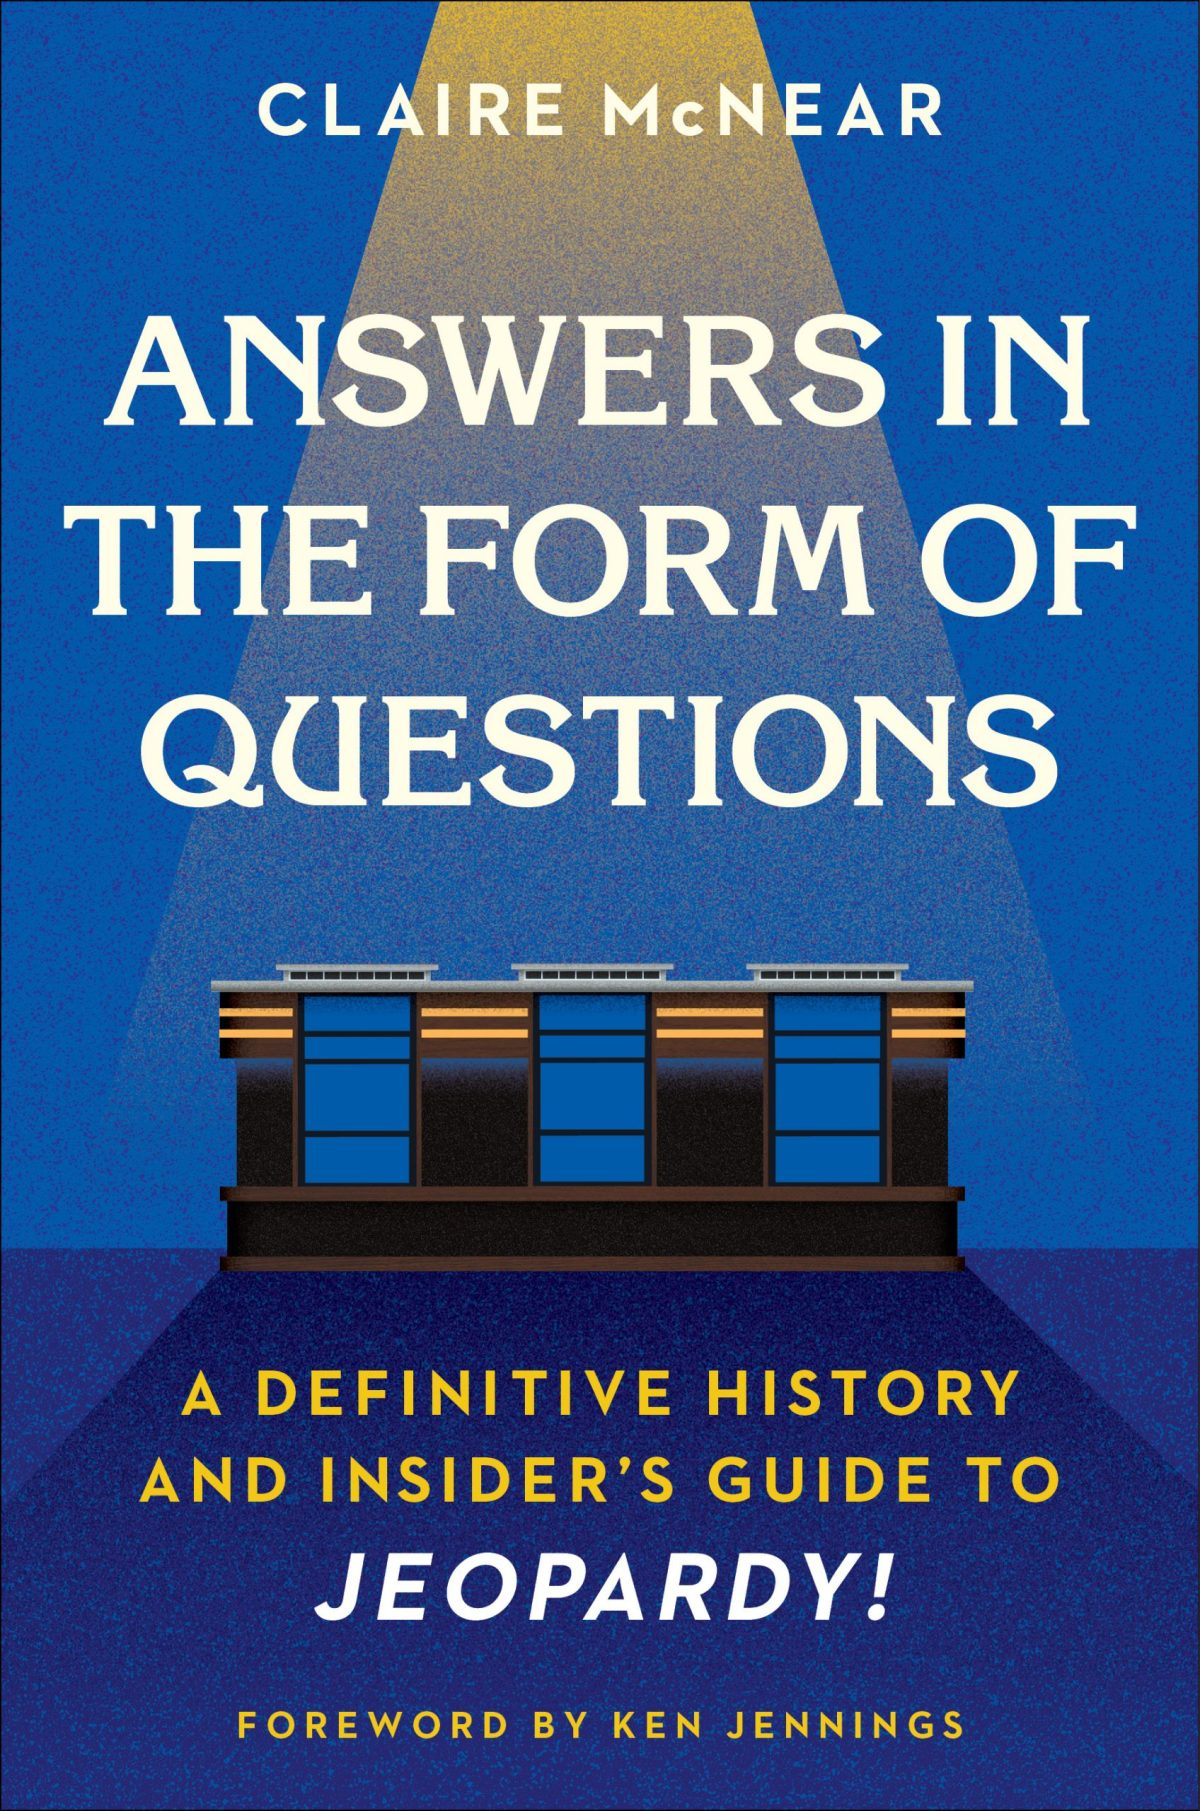 The cover of Answers in the Form of Questions